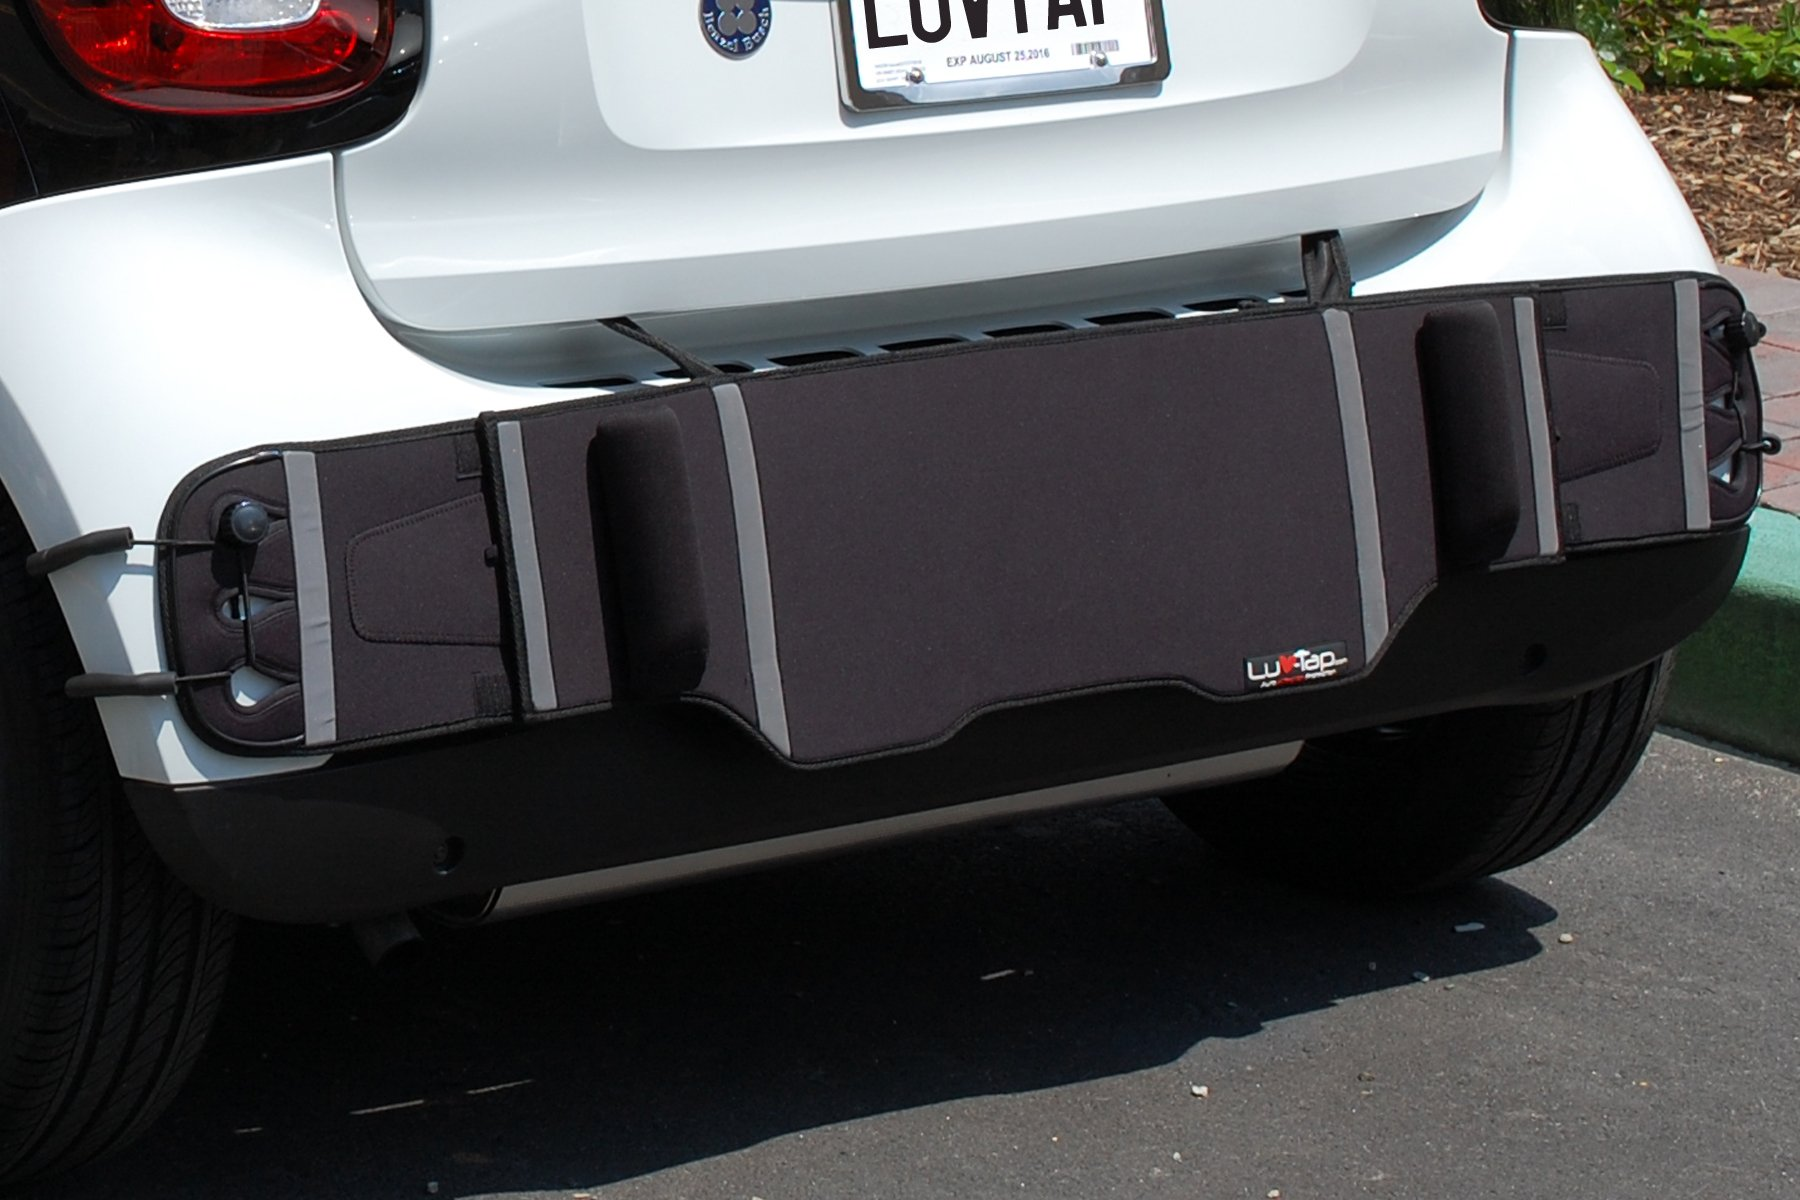 Luv-Tap BG001XS - Complete Coverage (Mini - X-Small - No Cut Out for License Plate)